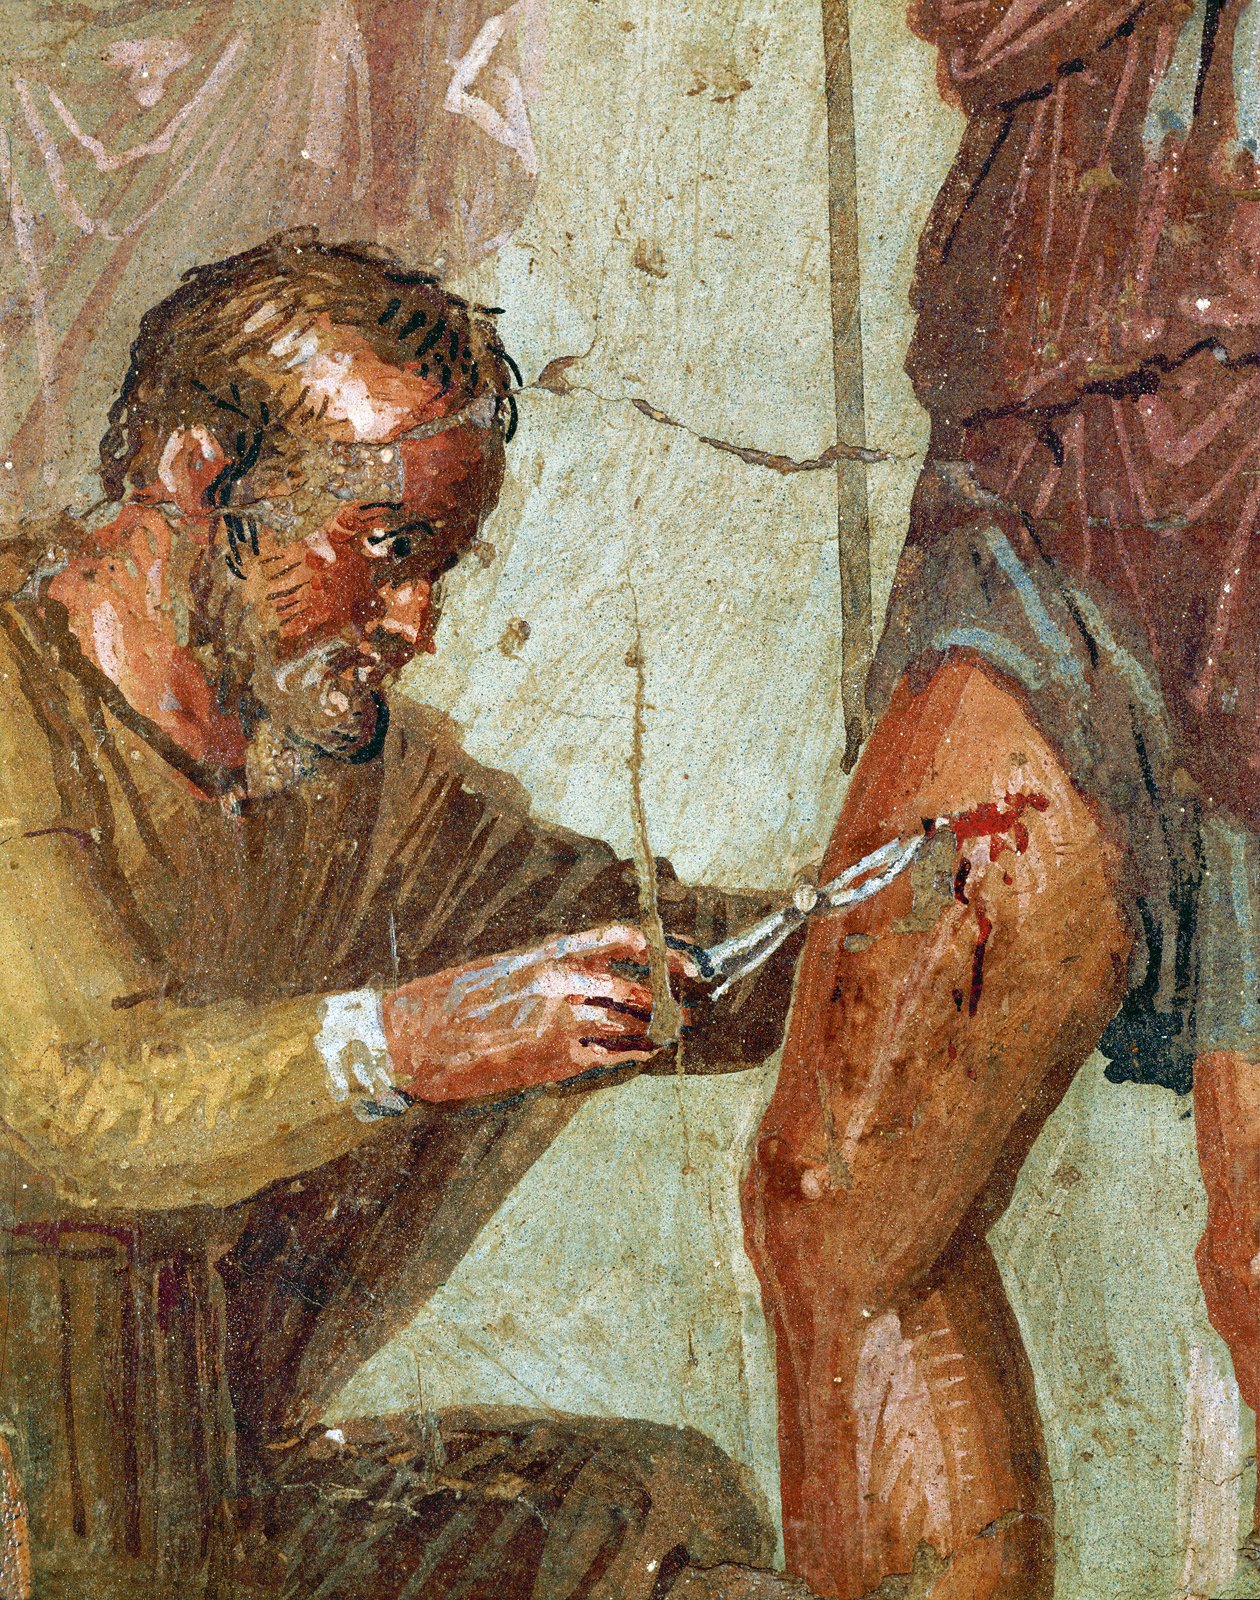 The physician Iapyx tries to remove an arrowhead from the thigh of Aeneas, fresco from the Casa di Sirico, Pompeii, first century. Naples National Archaeological Museum, Naples, Italy.